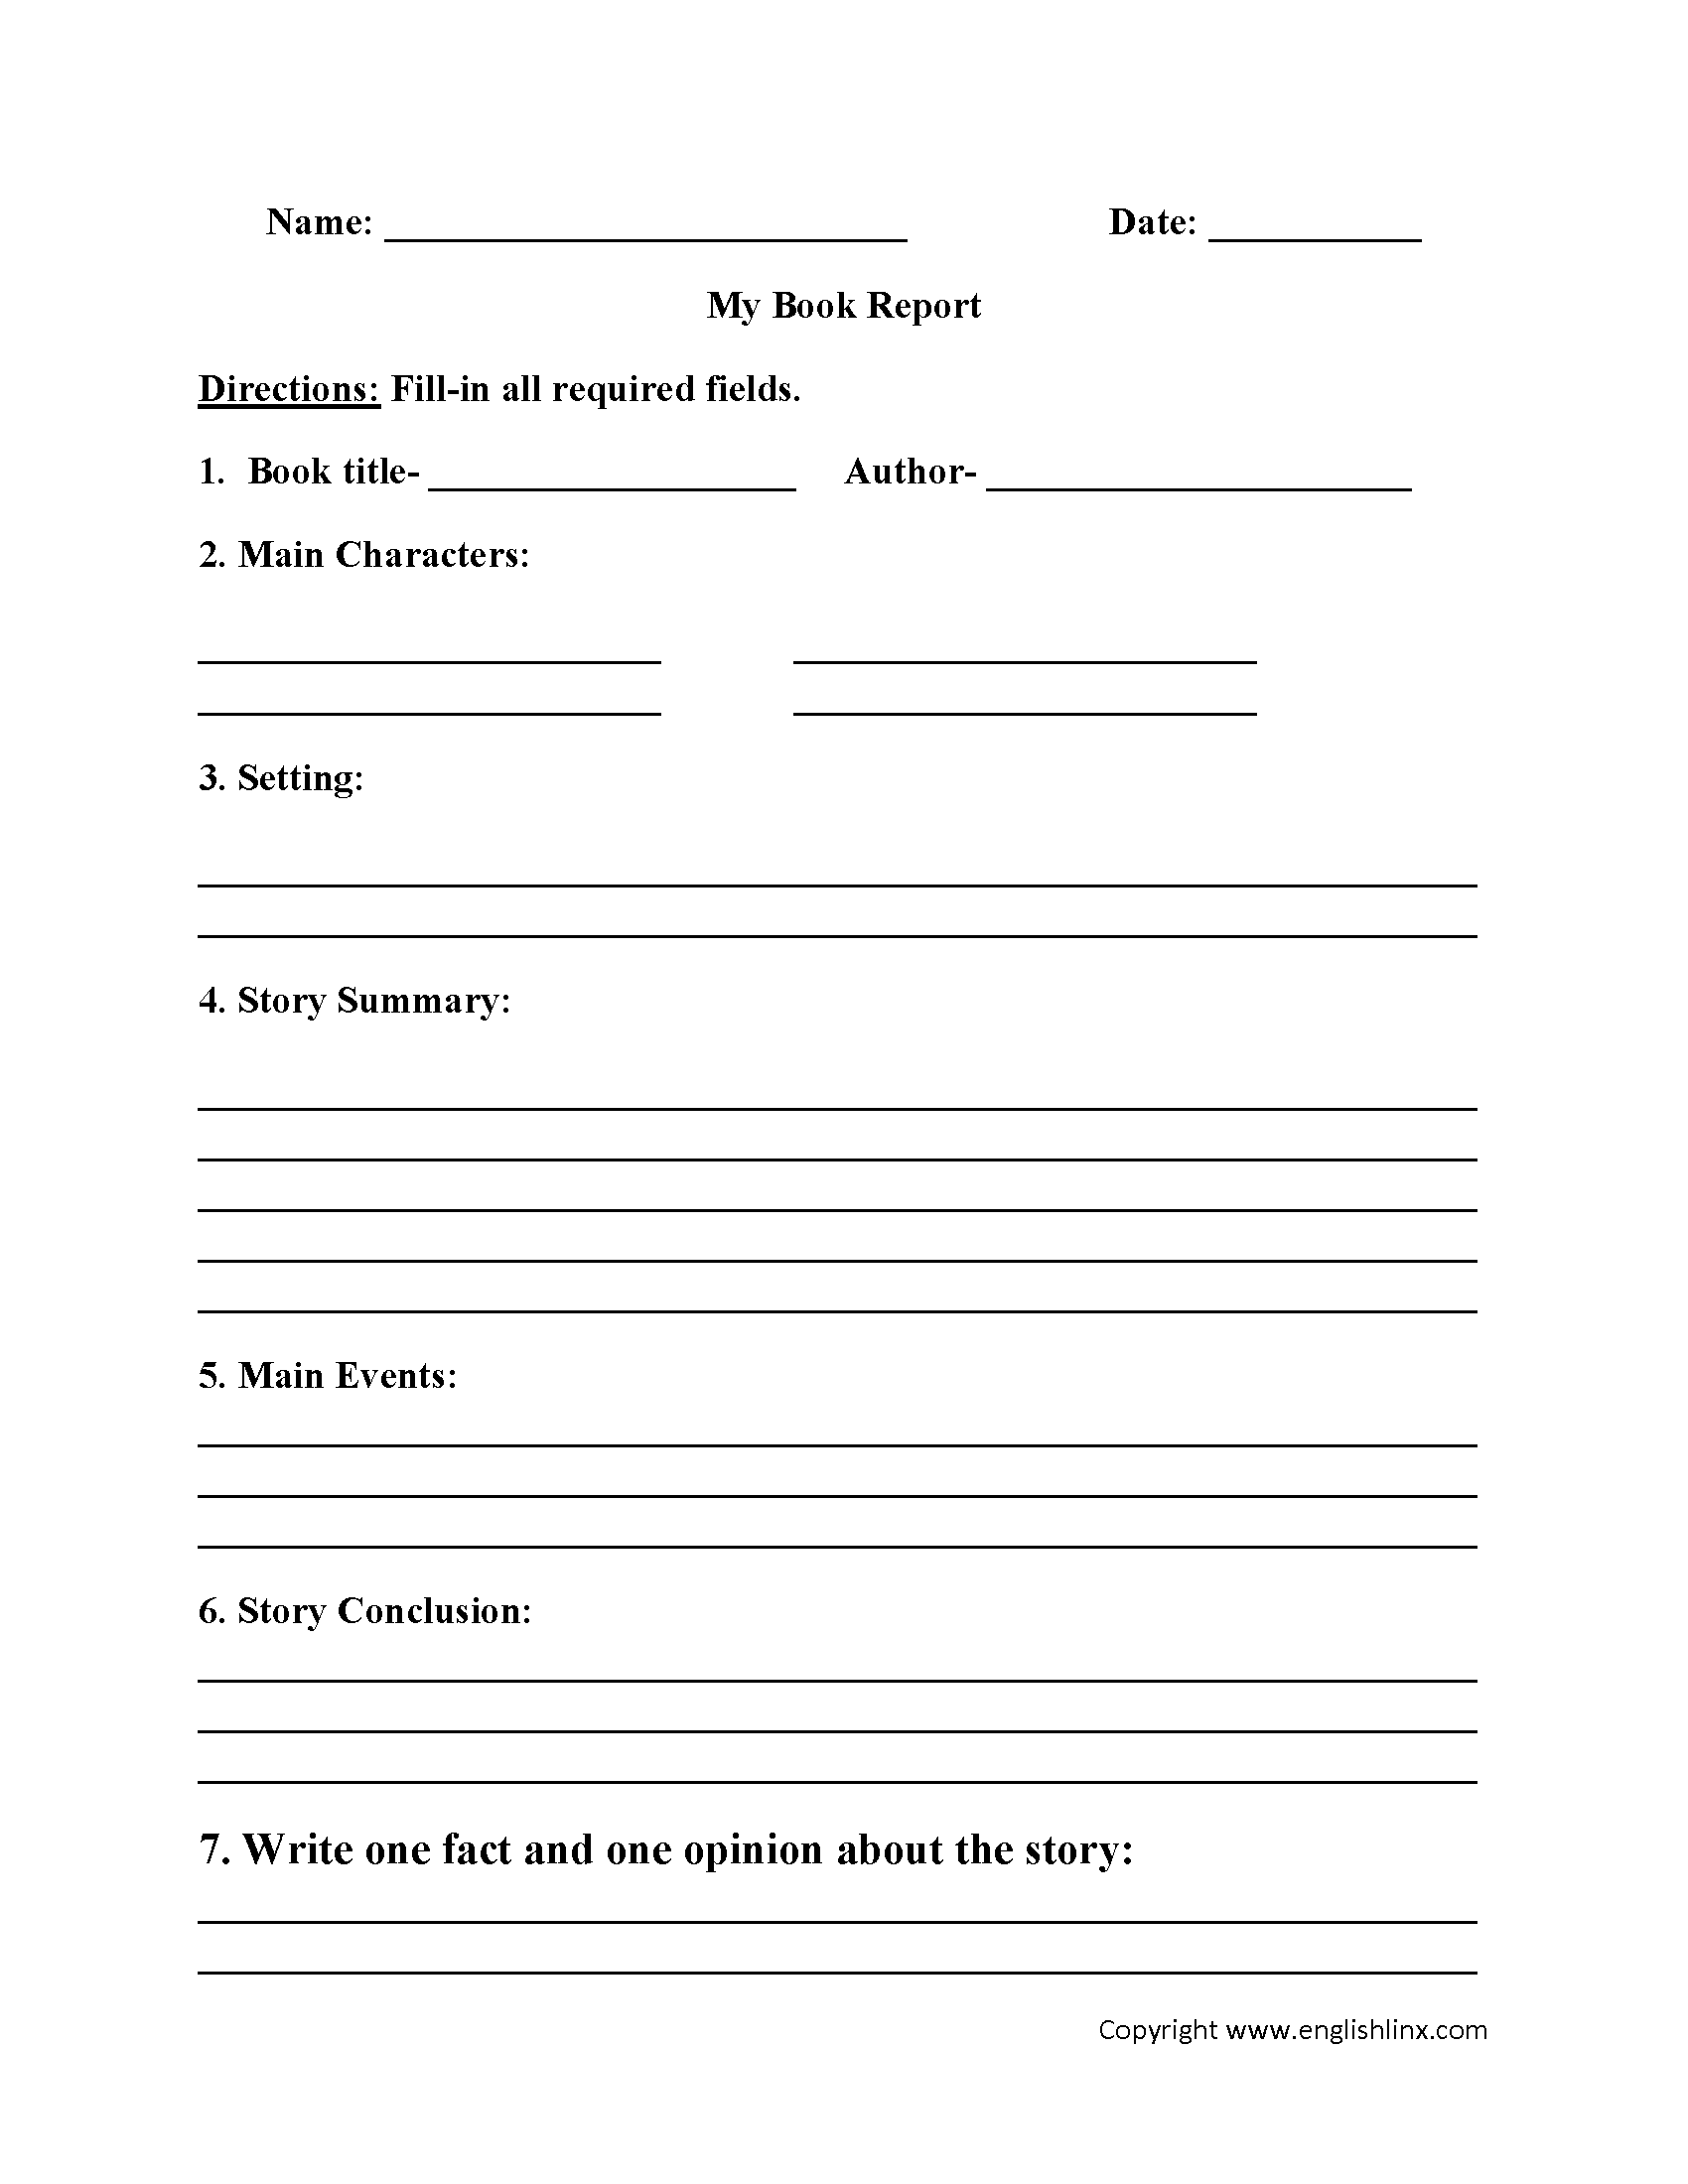 My Book Report Worksheet